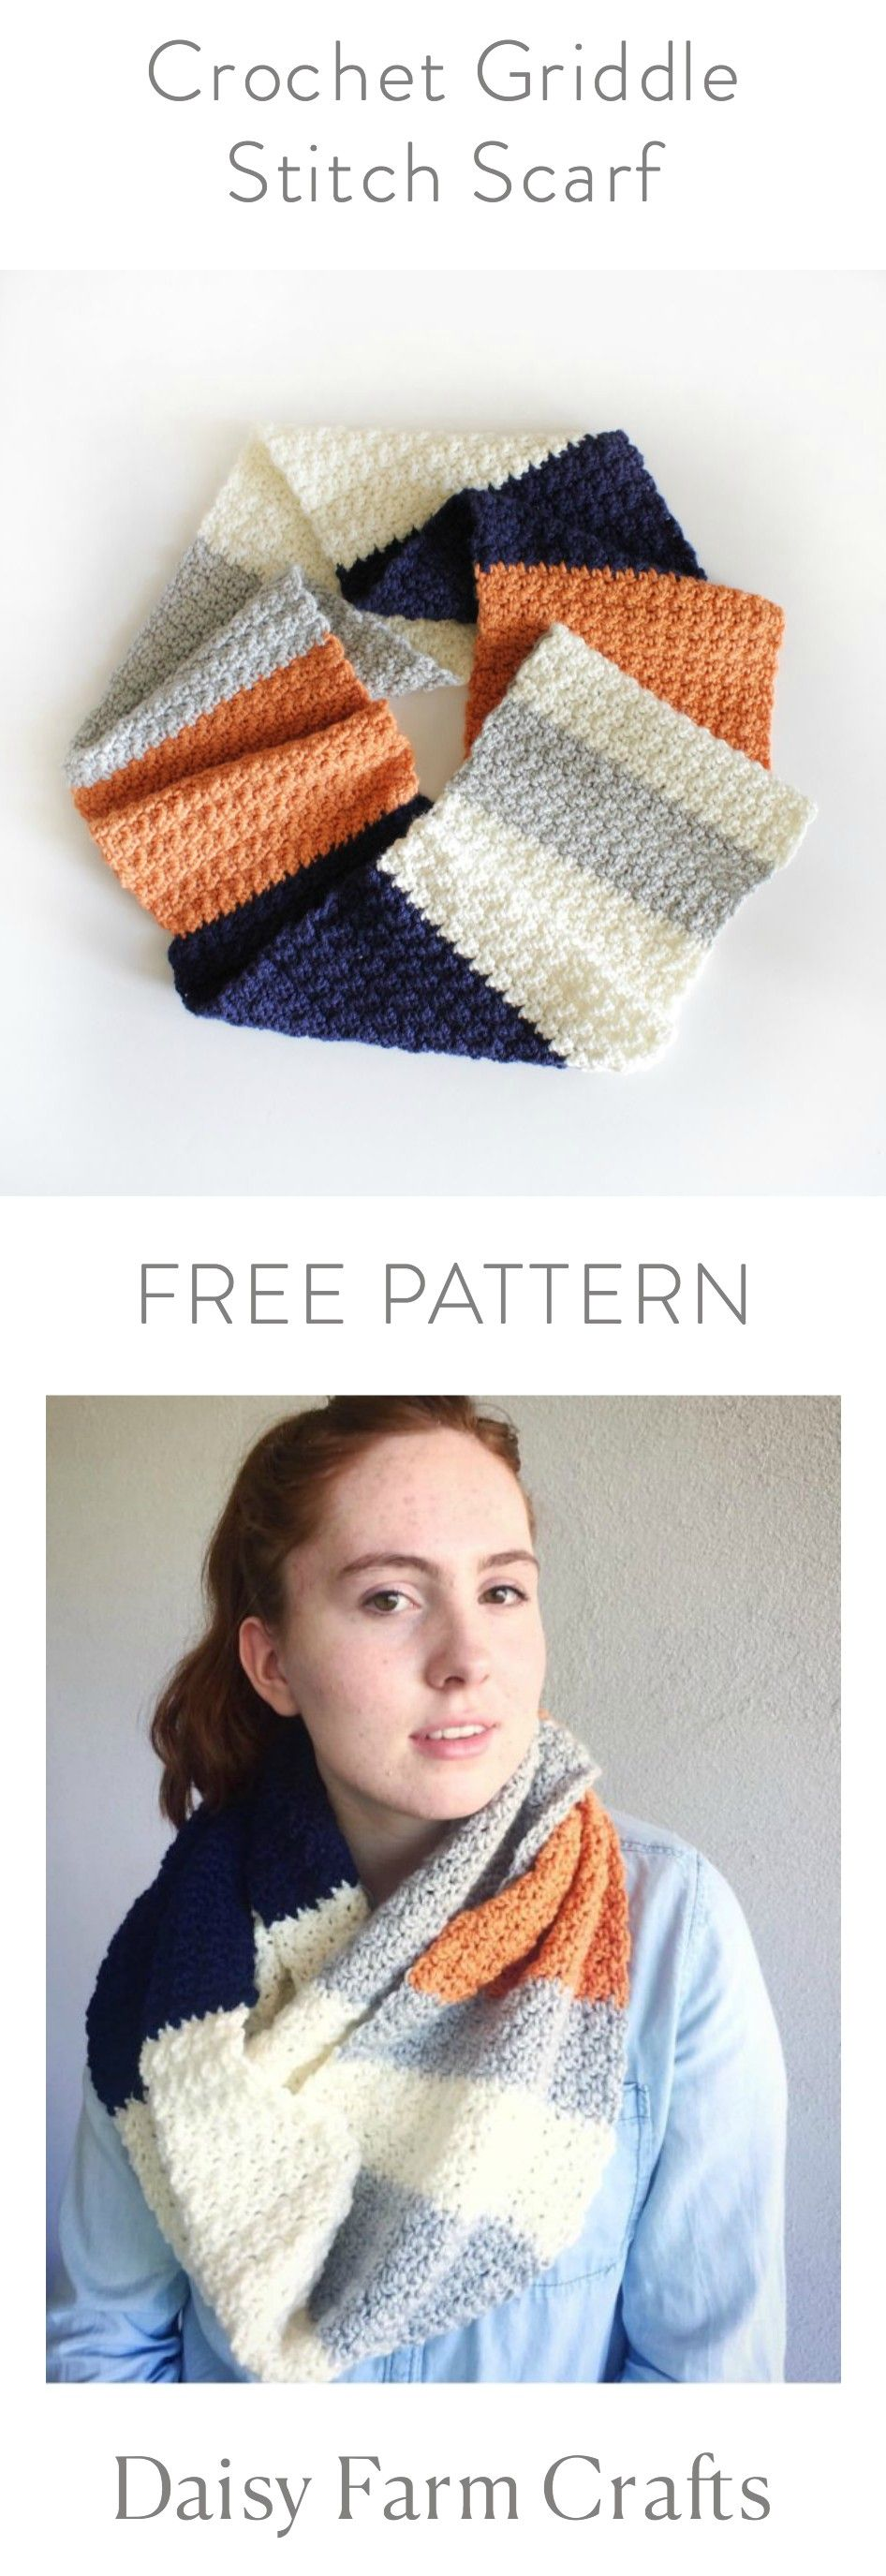 FREE PATTERN - Crochet Griddle Stitch Scarf | Cowls | Pinterest ...